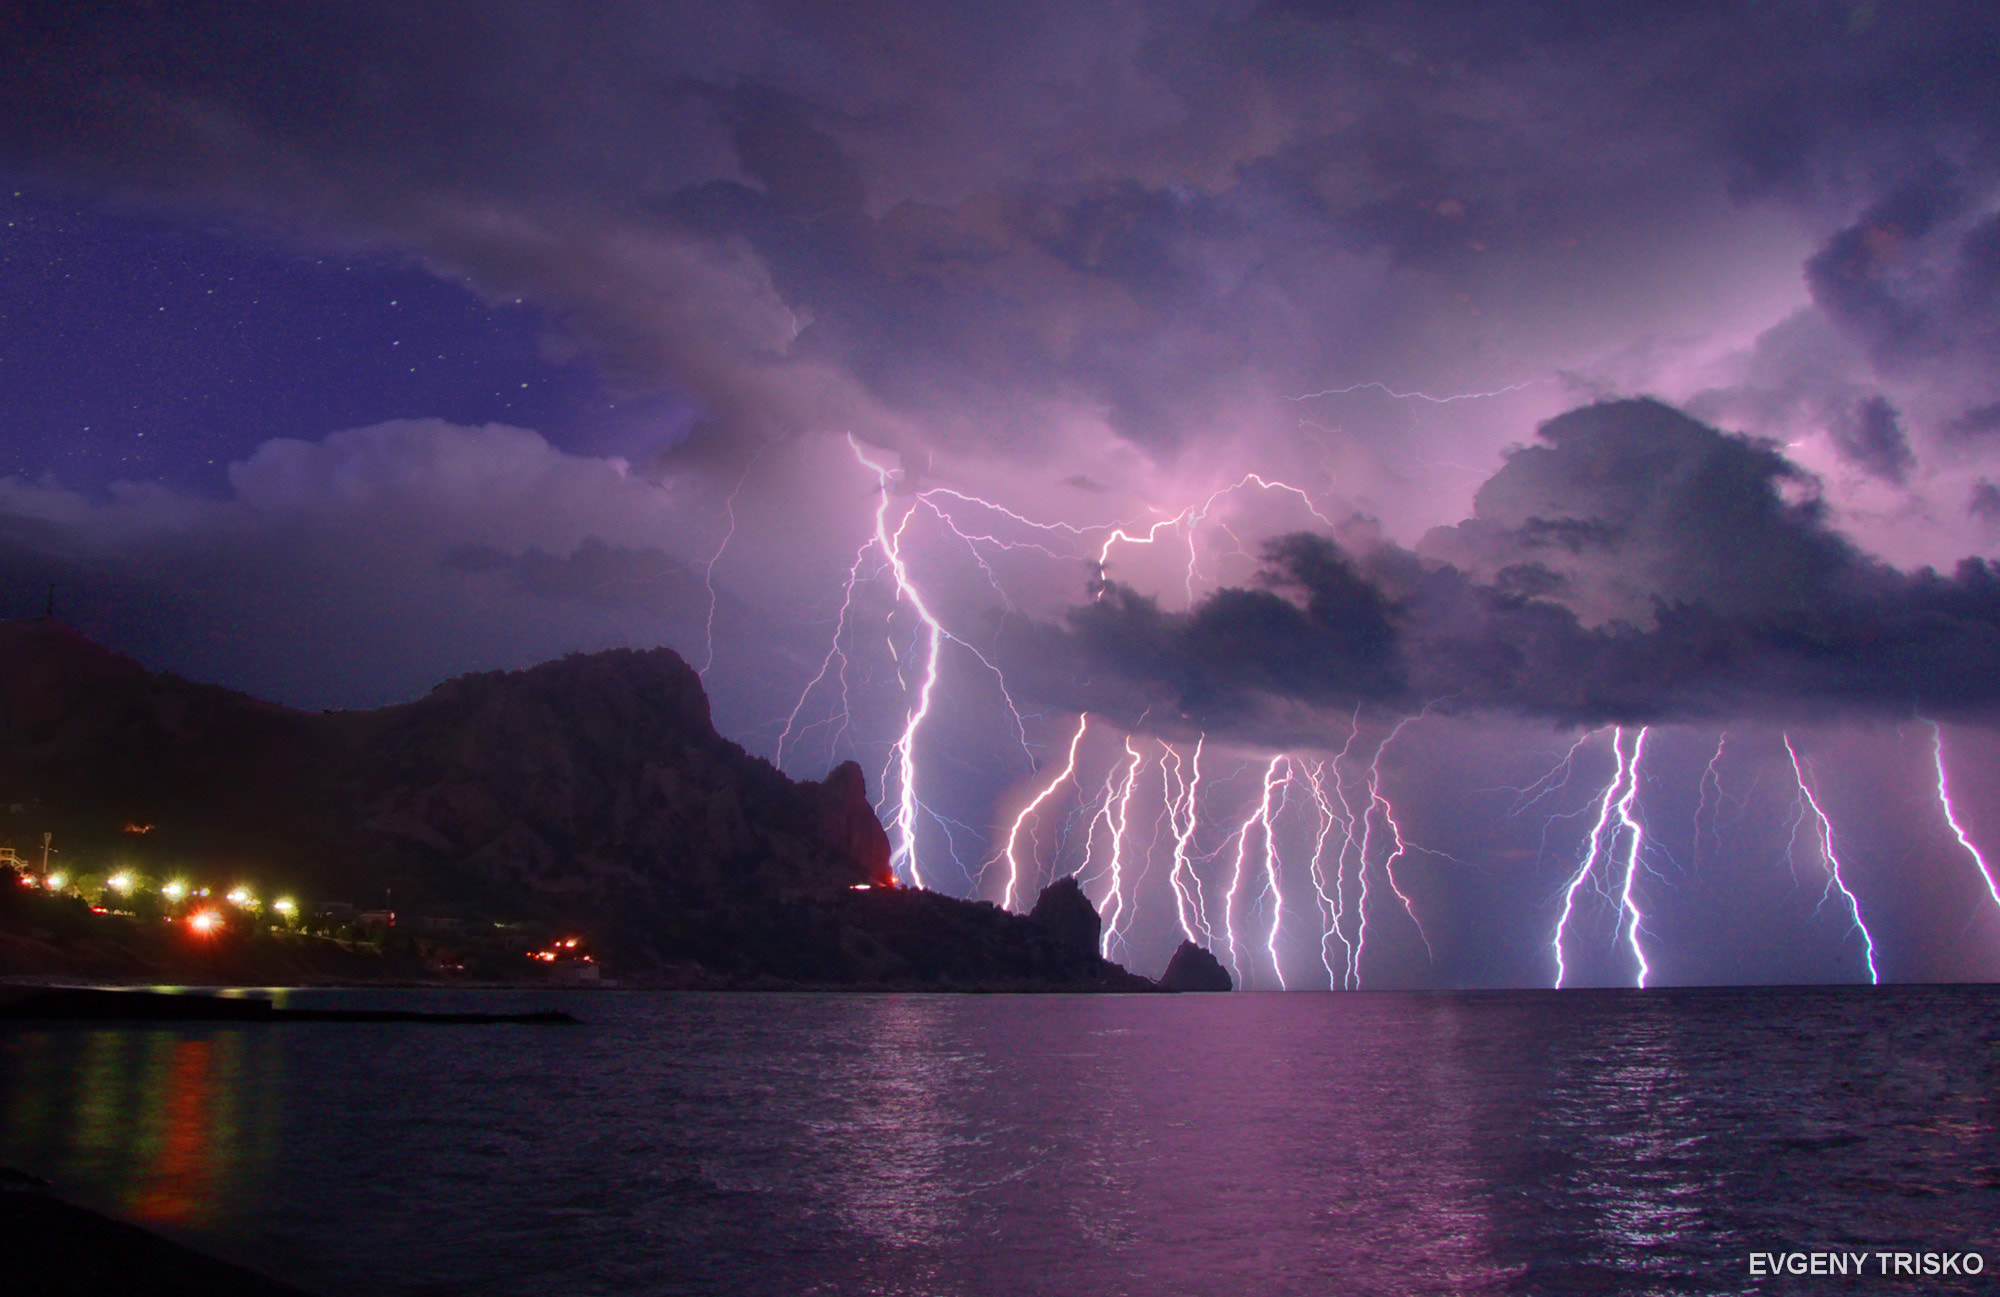 Photograph Storm by Evgeny Trisko on 500px